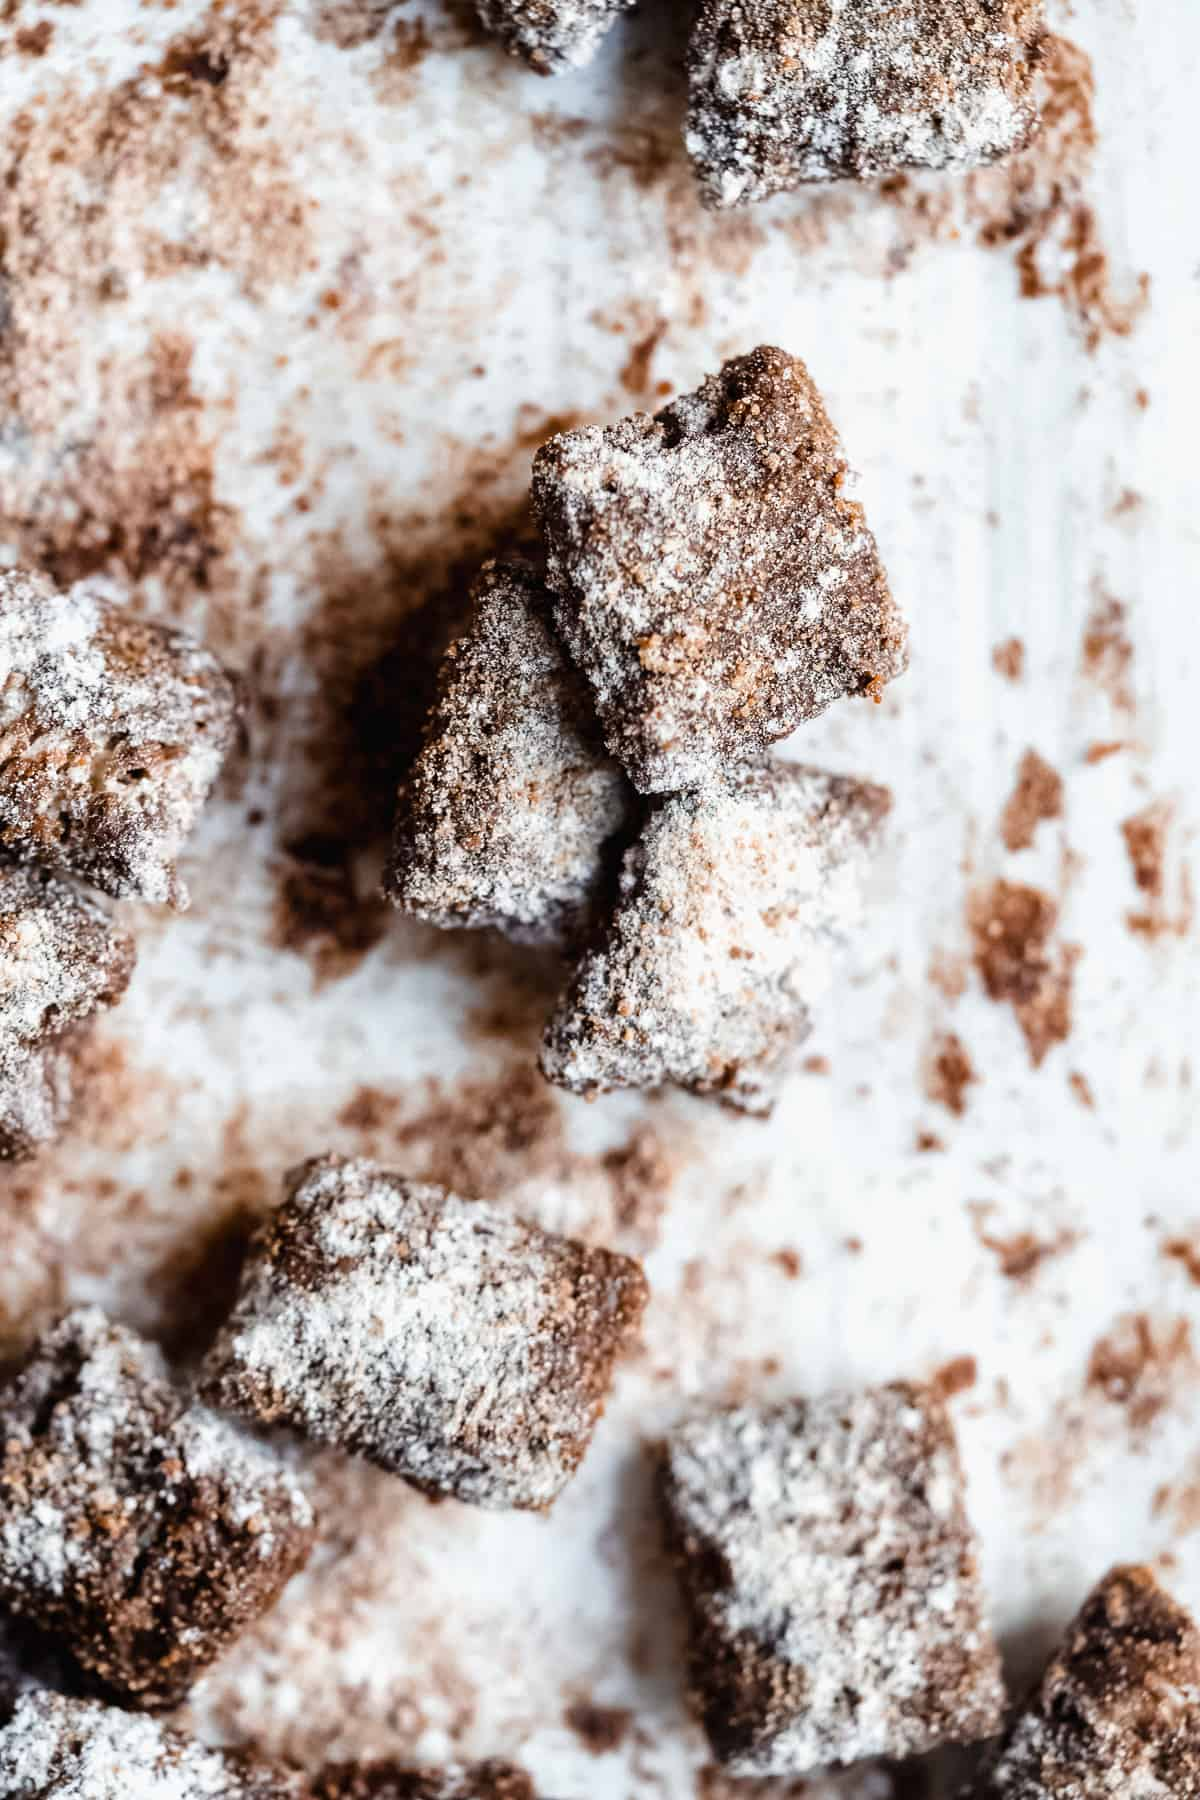 Close up photo of completed Healthy Puppy Chow pieces arranged on white parchment paper.